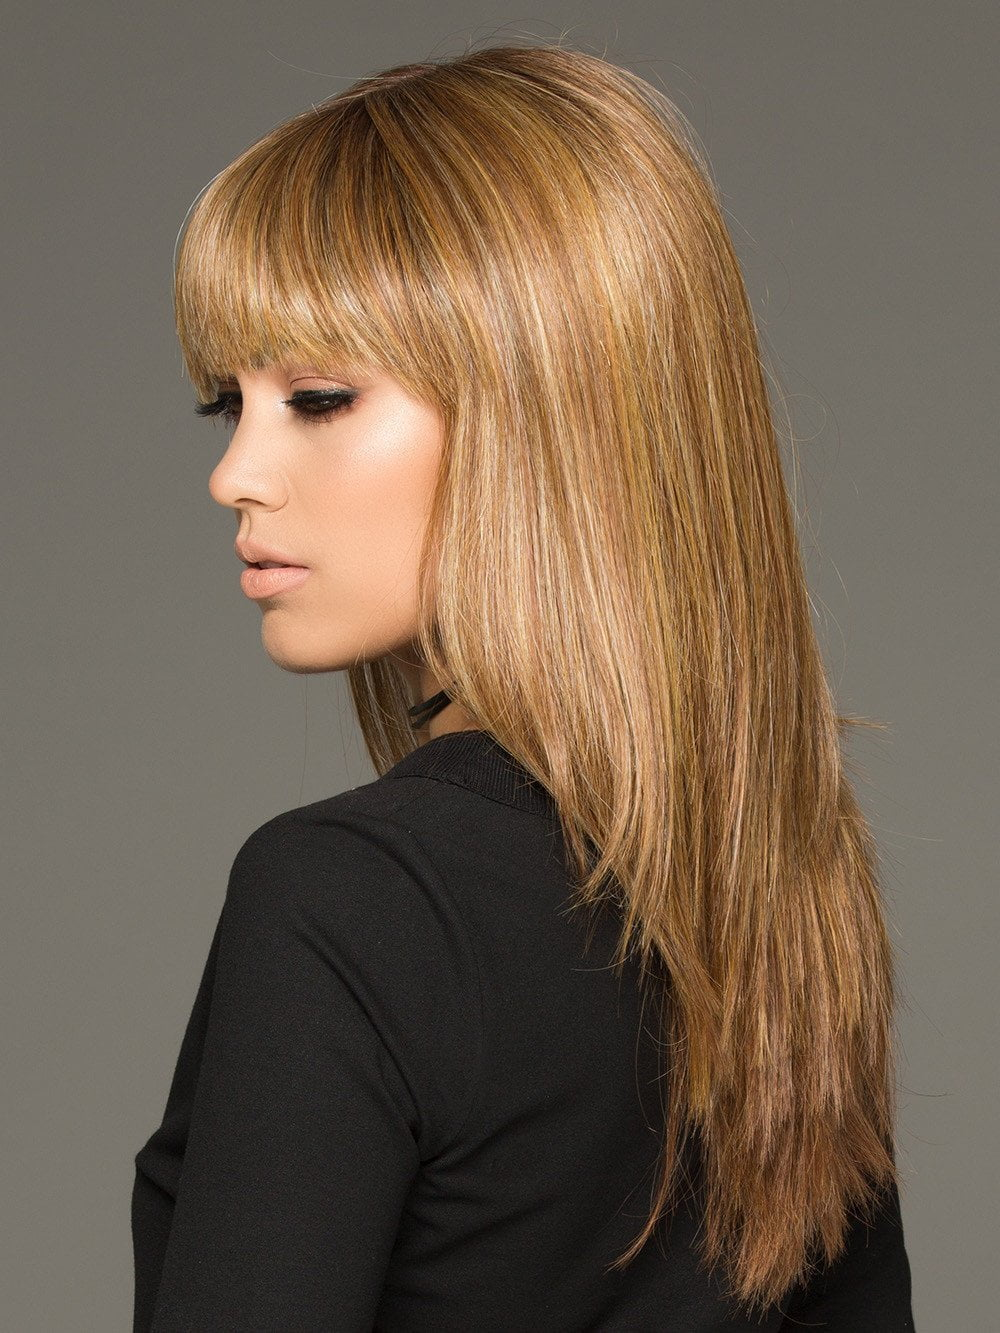 The Envy Taryn Wig is a long, sleek, and modern hairstyle with a blunt bang.